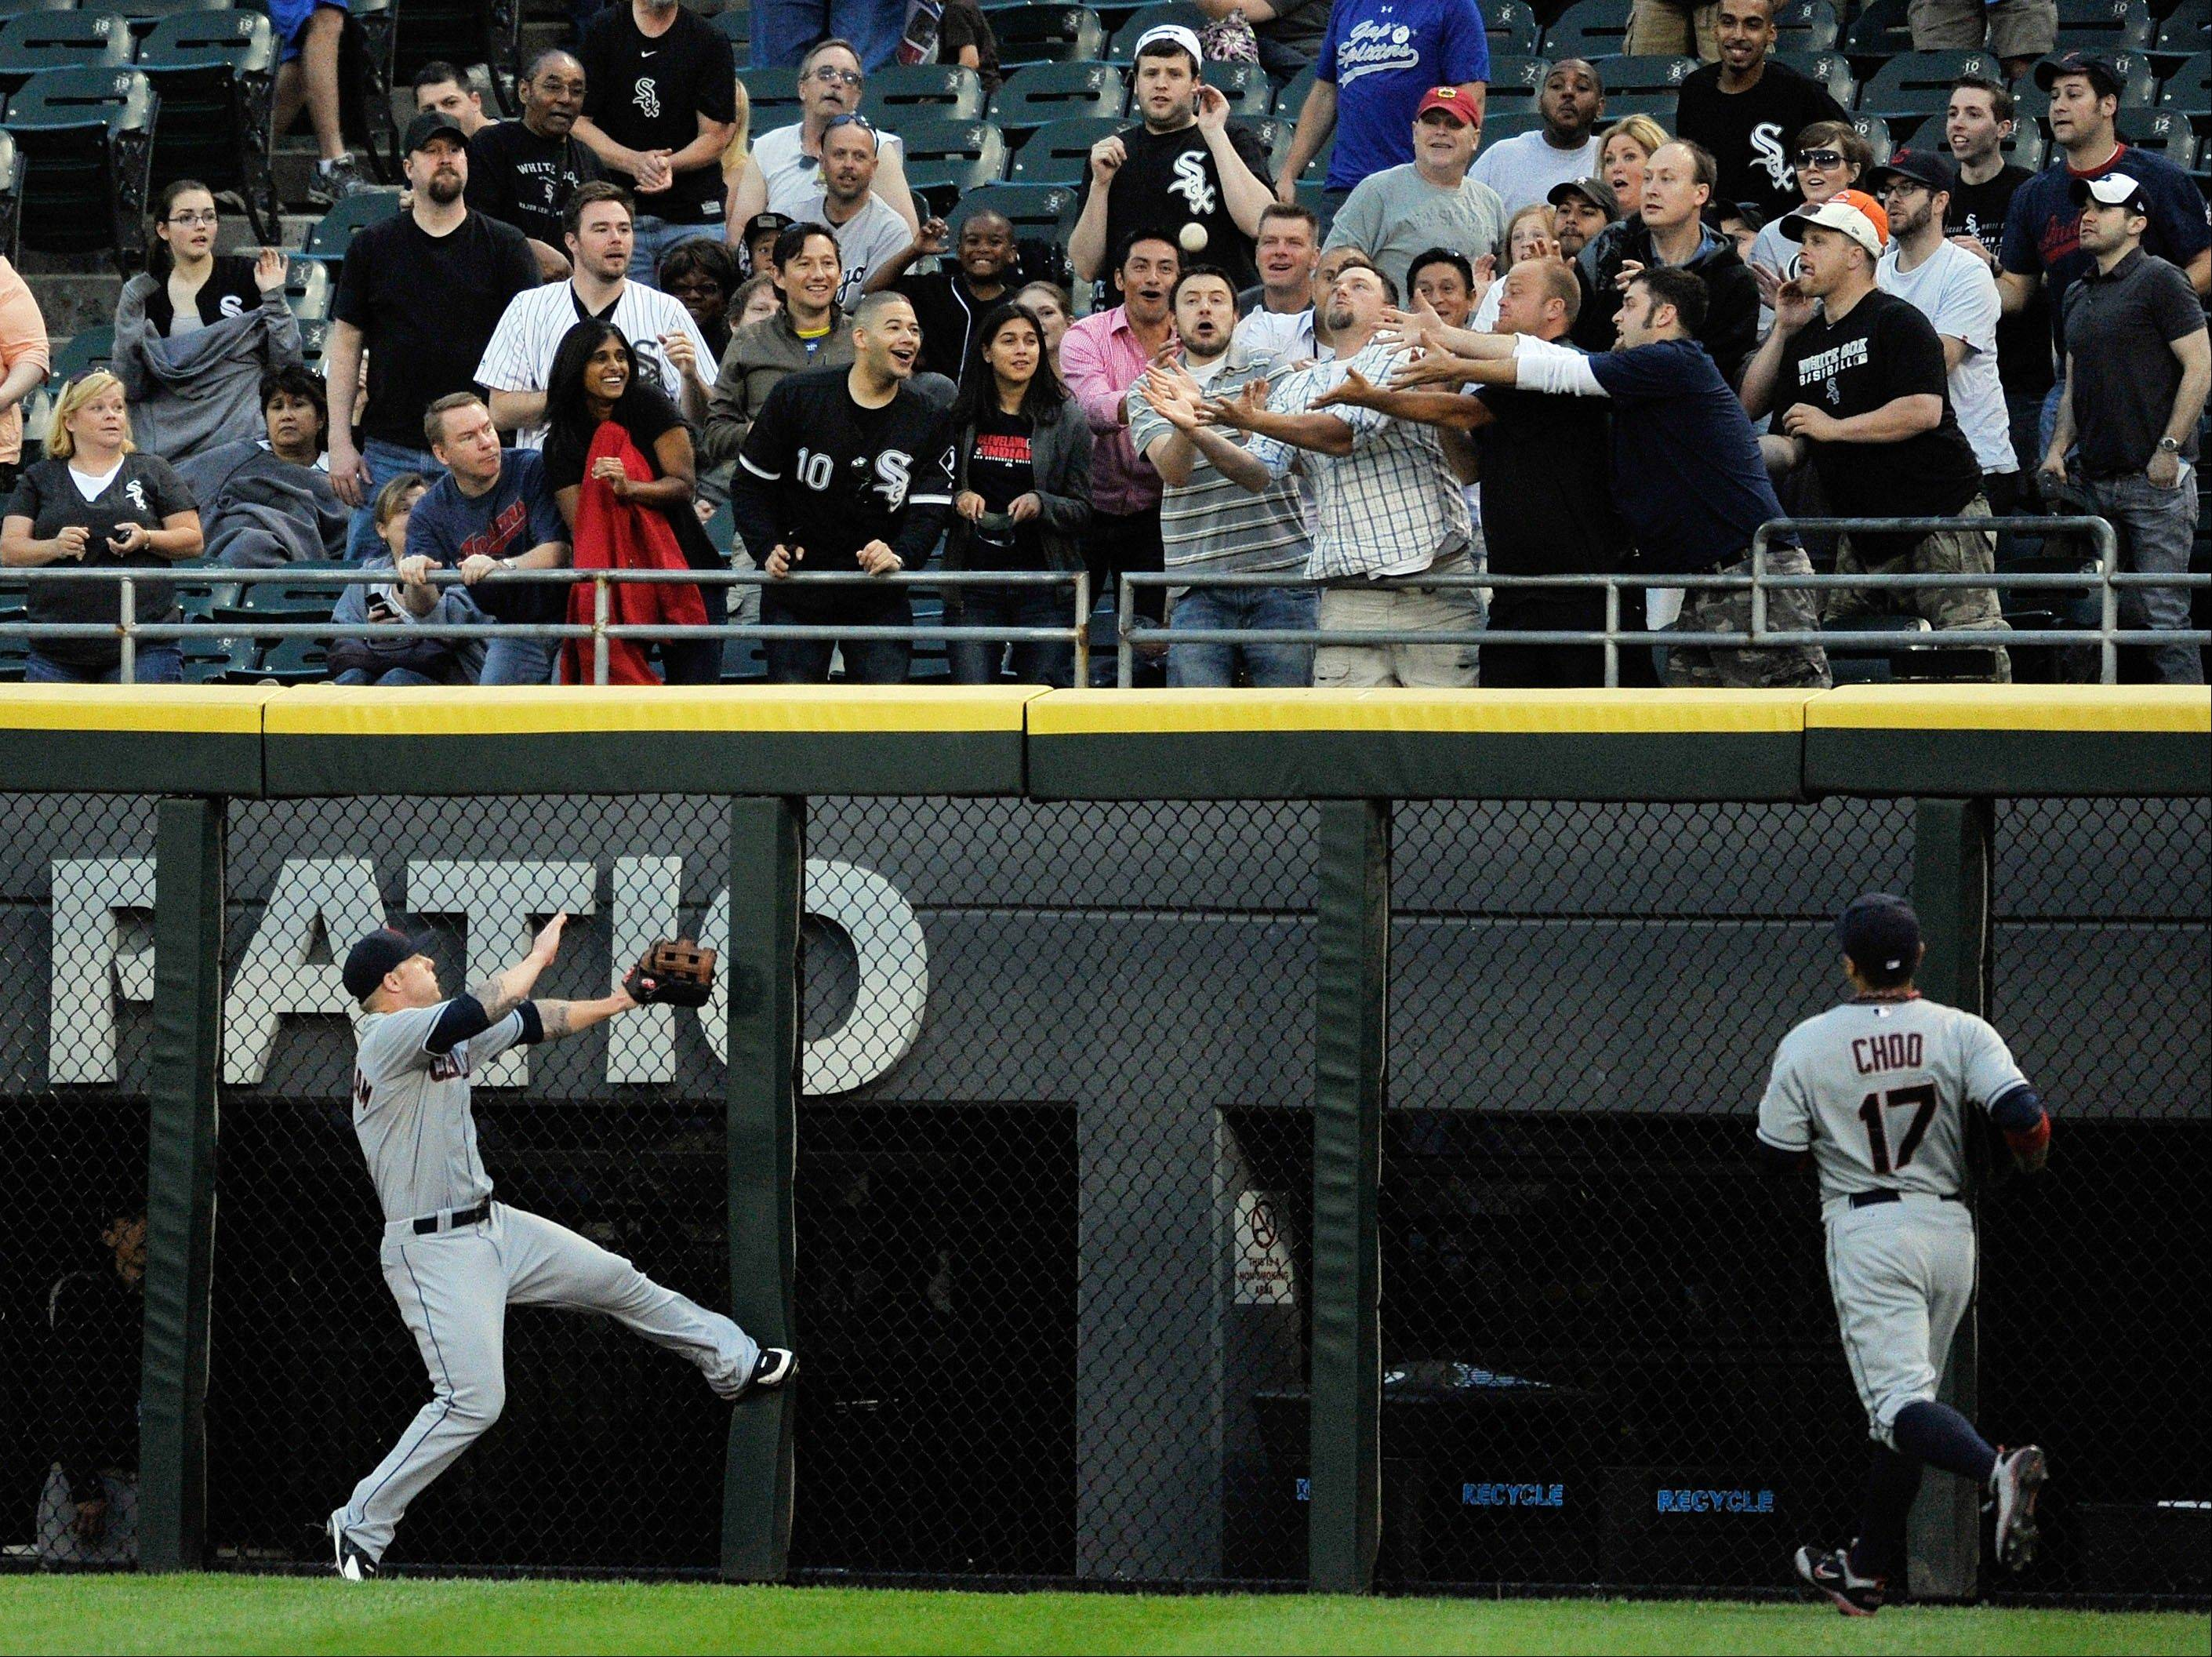 The White Sox are averaging 20,662 fans per game so far this season. That ranks 27th out of 30 teams.